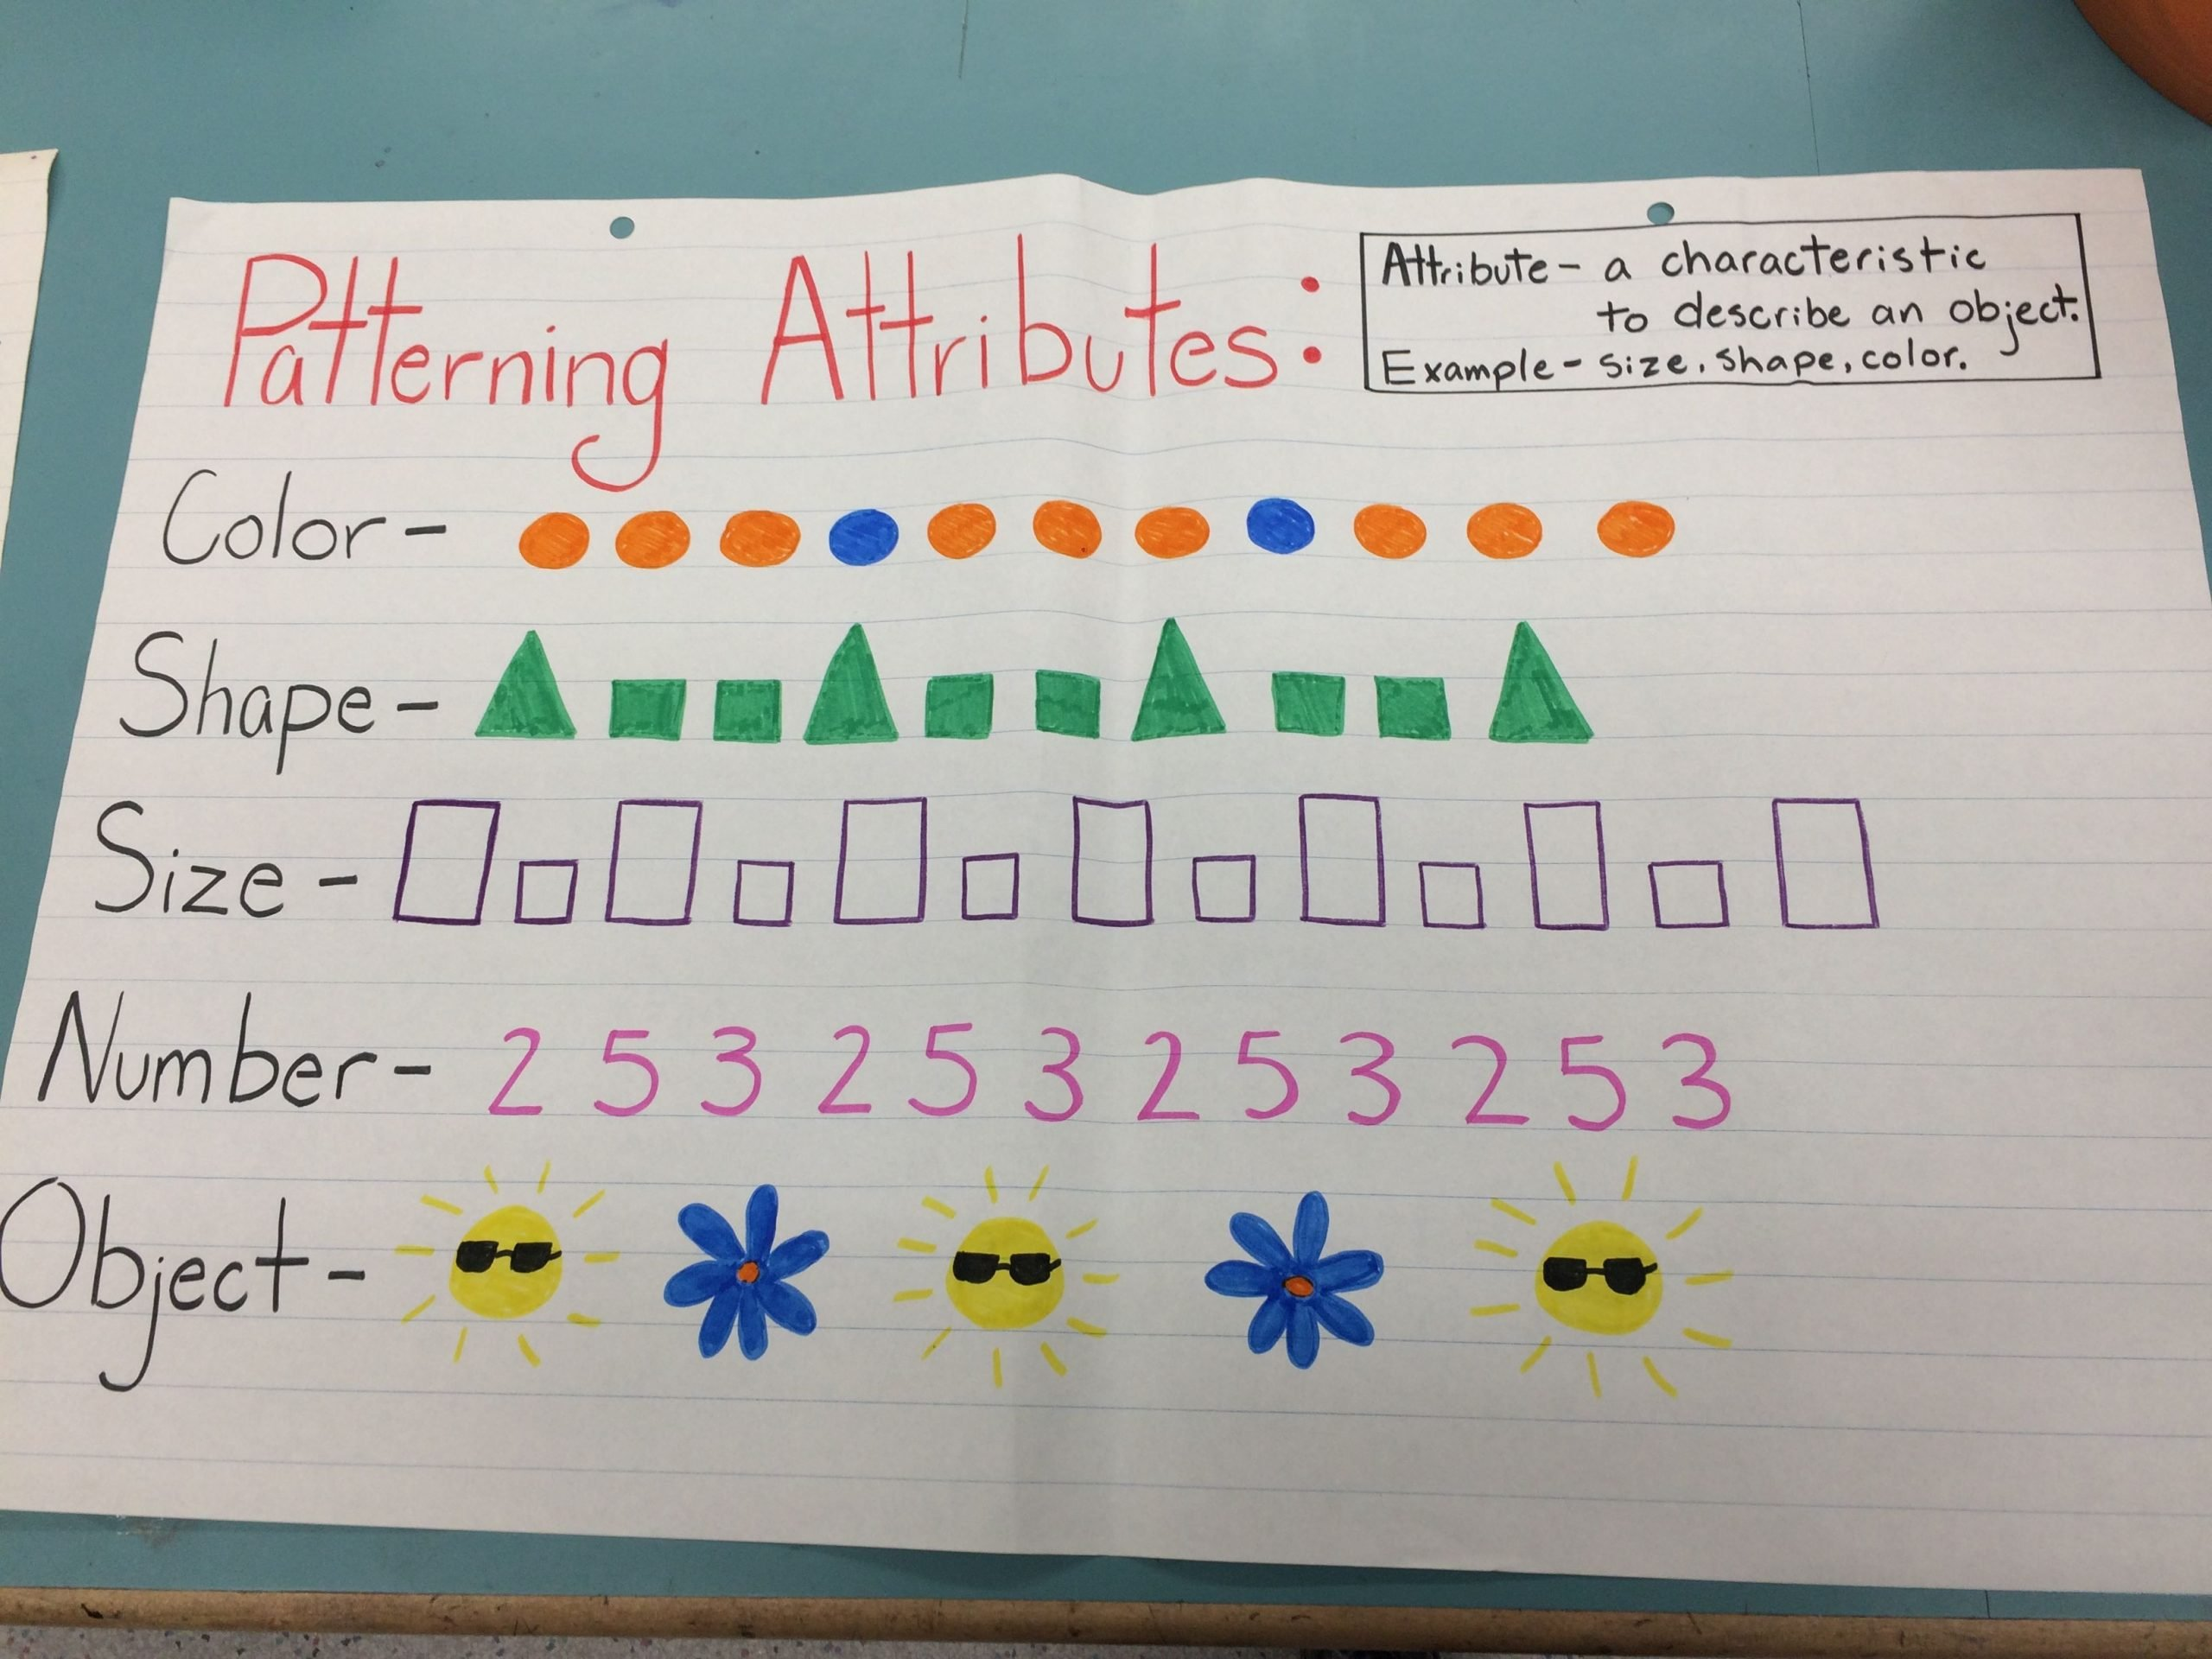 Geometric Shape Pattern Worksheets Pattering attributes Anchor Chart Patterns are Way More